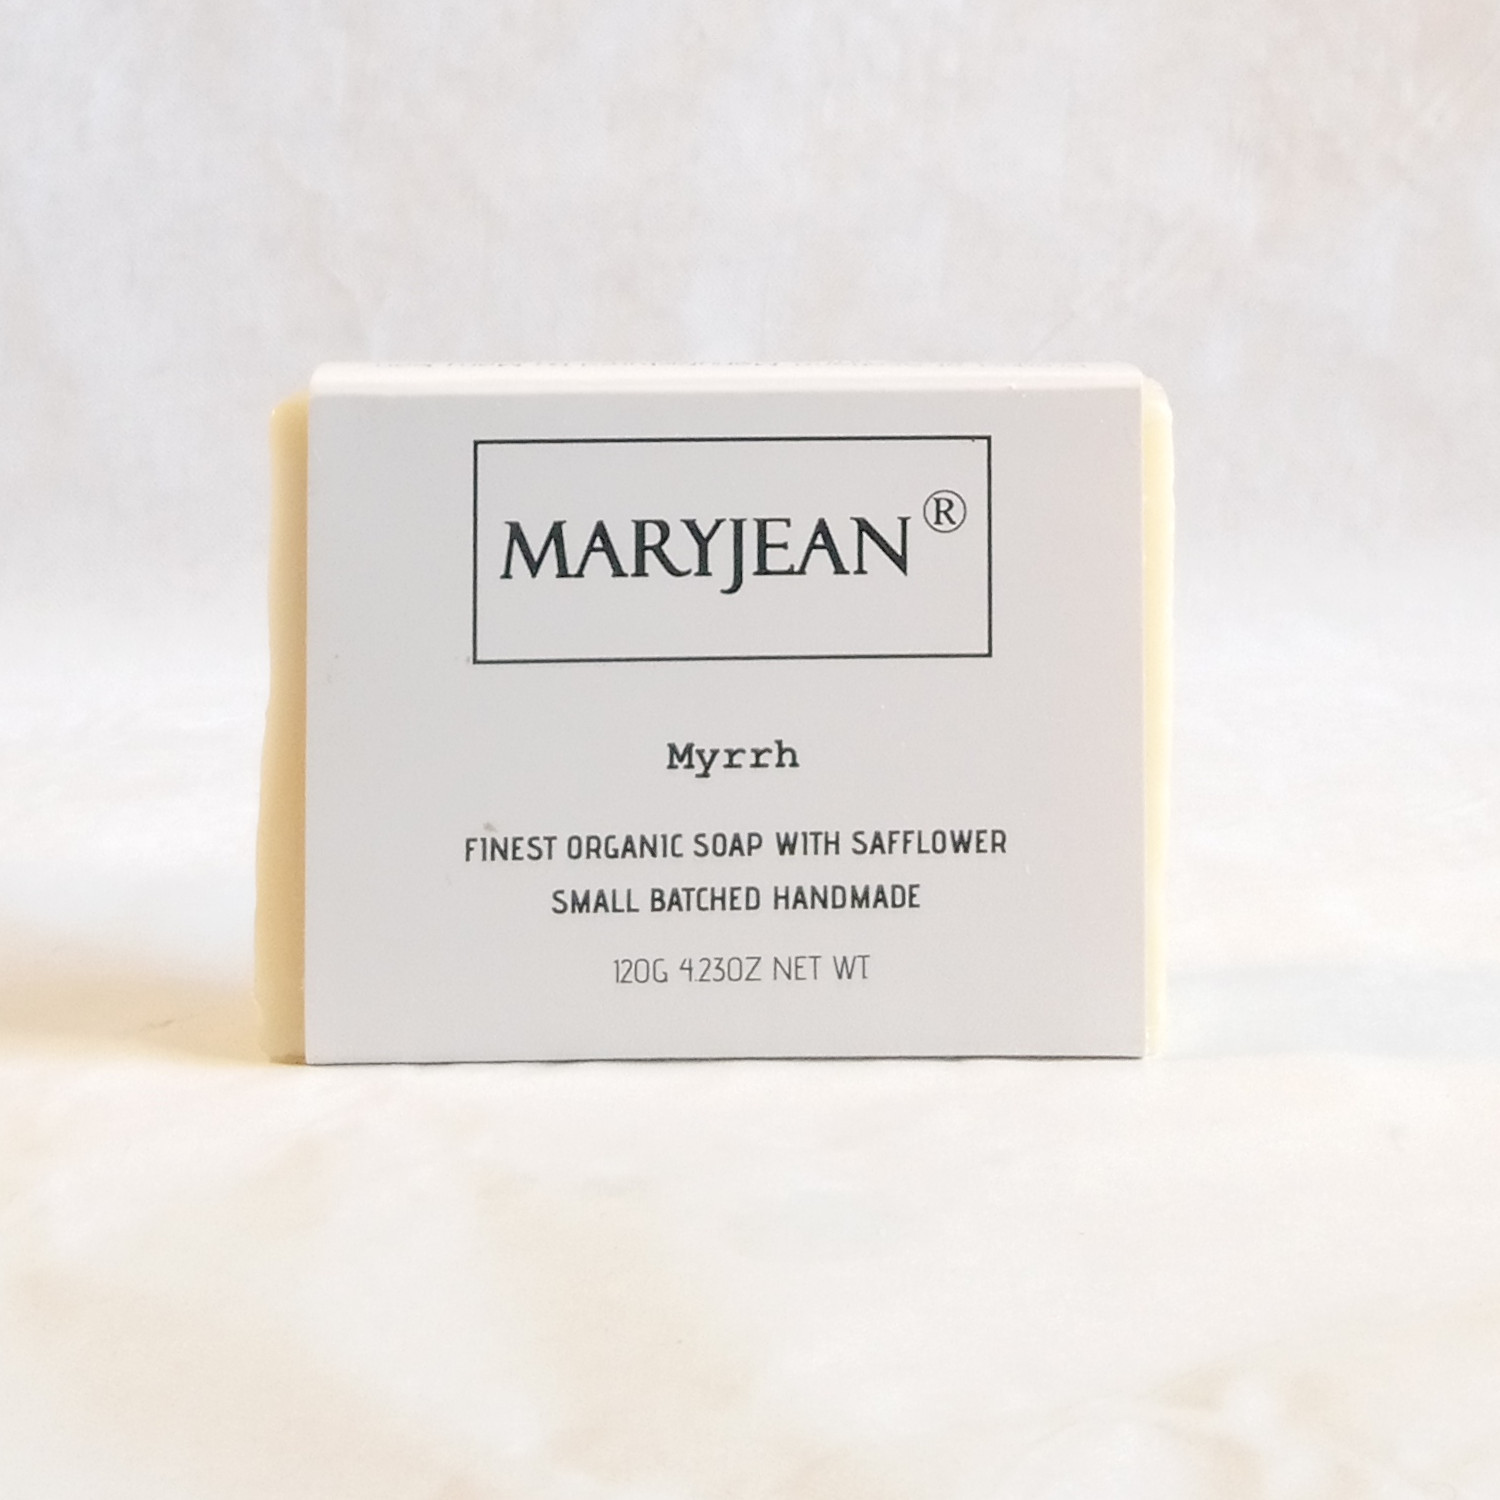 Organic Scottish Myrrh Soap Handmade with Safflower Best care of the health of your skin for outdoor weathering and environmental stress prevents dryness and cell damage